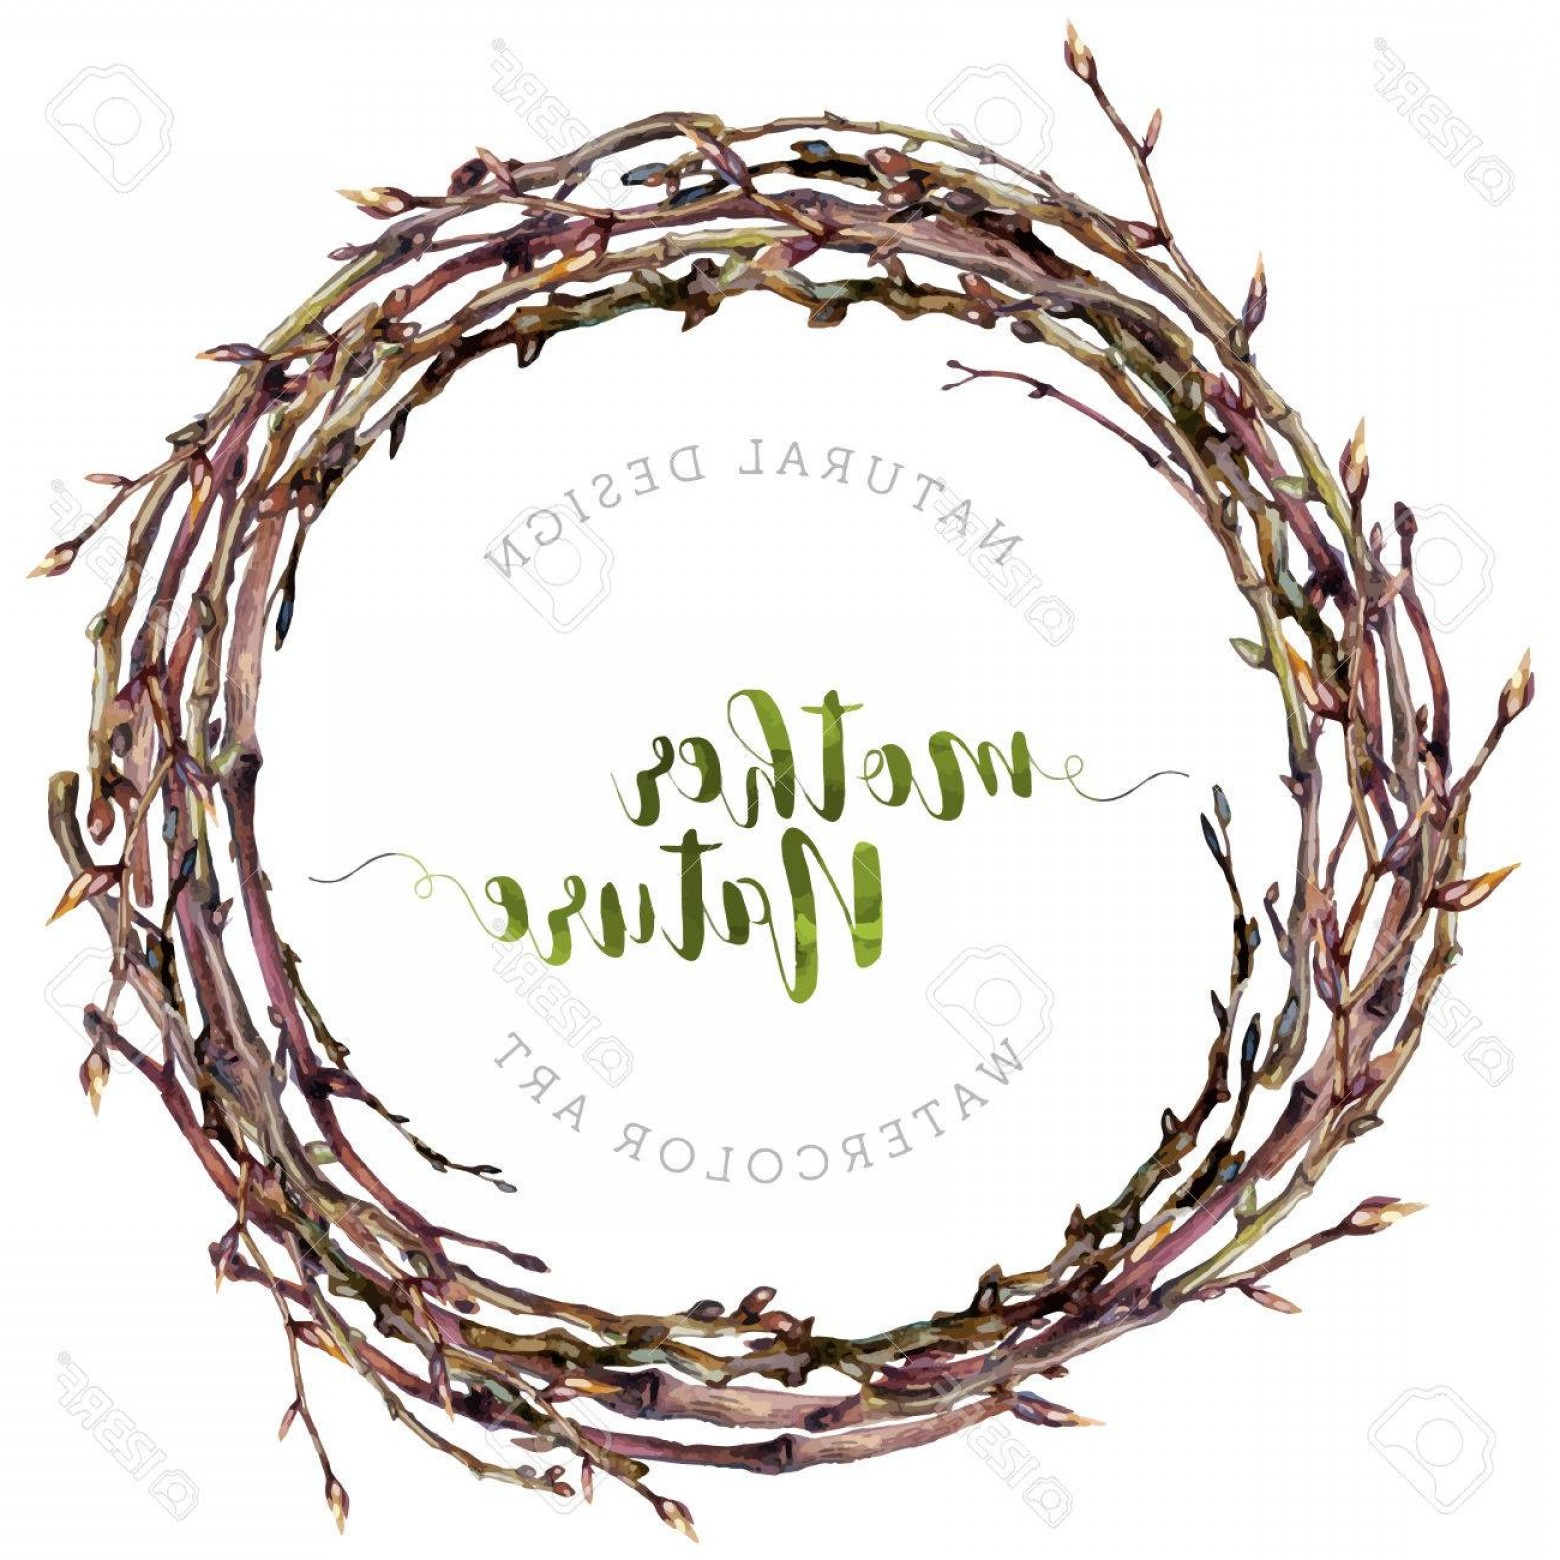 Vector Natural Willow: Photostock Vector Watercolor Boho Wreath Made Of Dry Twigs And Bare Osier Branches Isolated On White Natural Decoratio